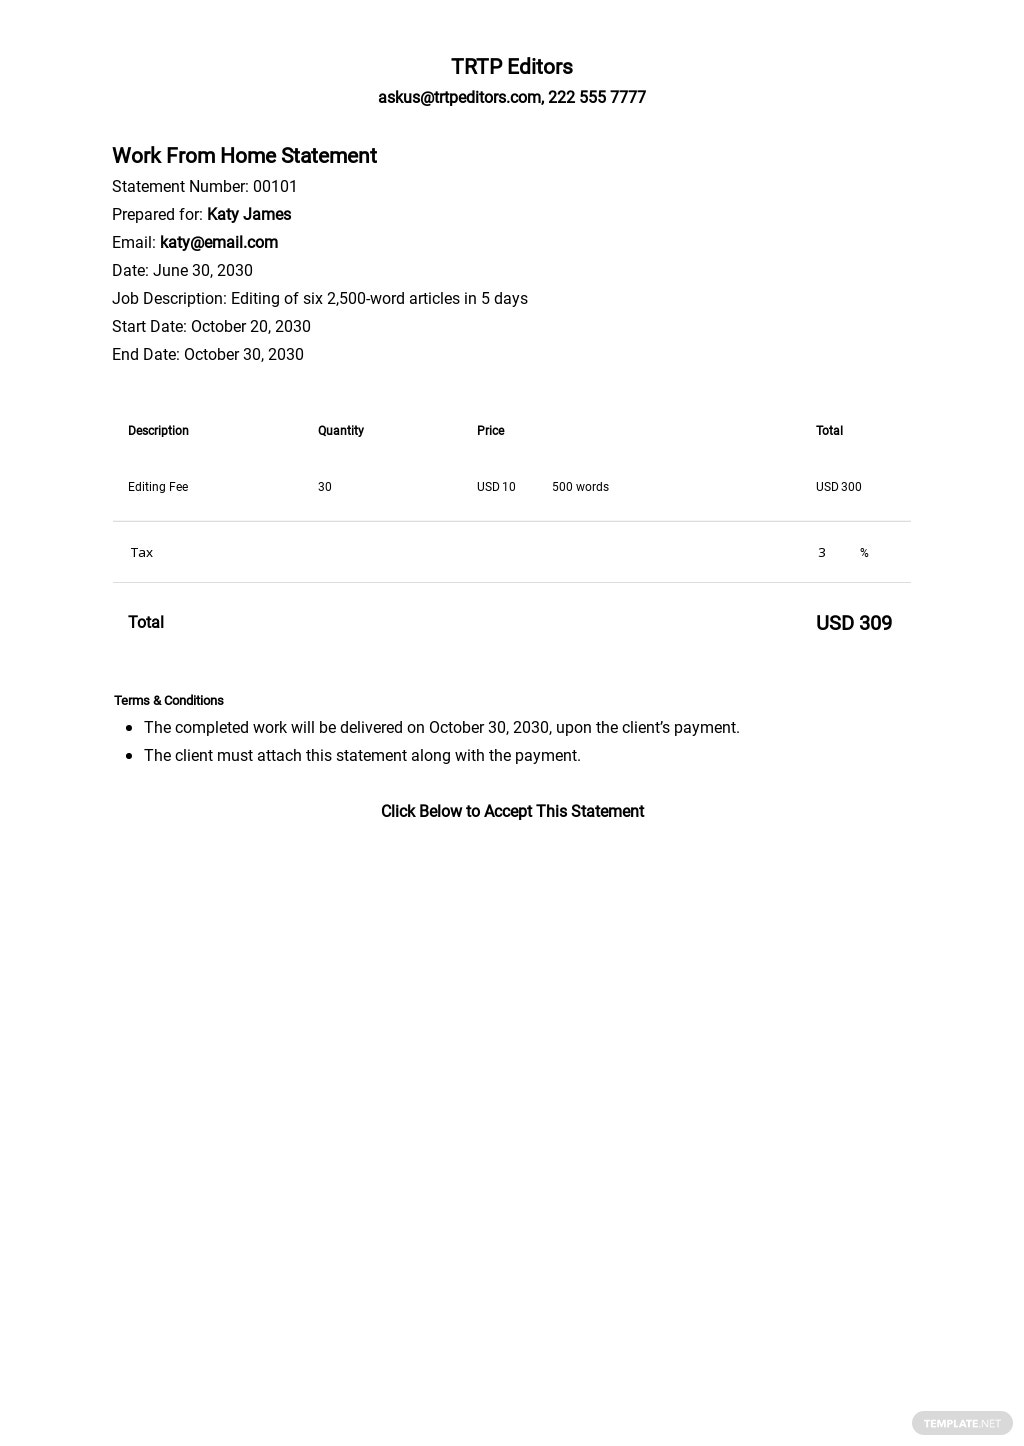 Free Blank Work From Home Statement Template.jpe